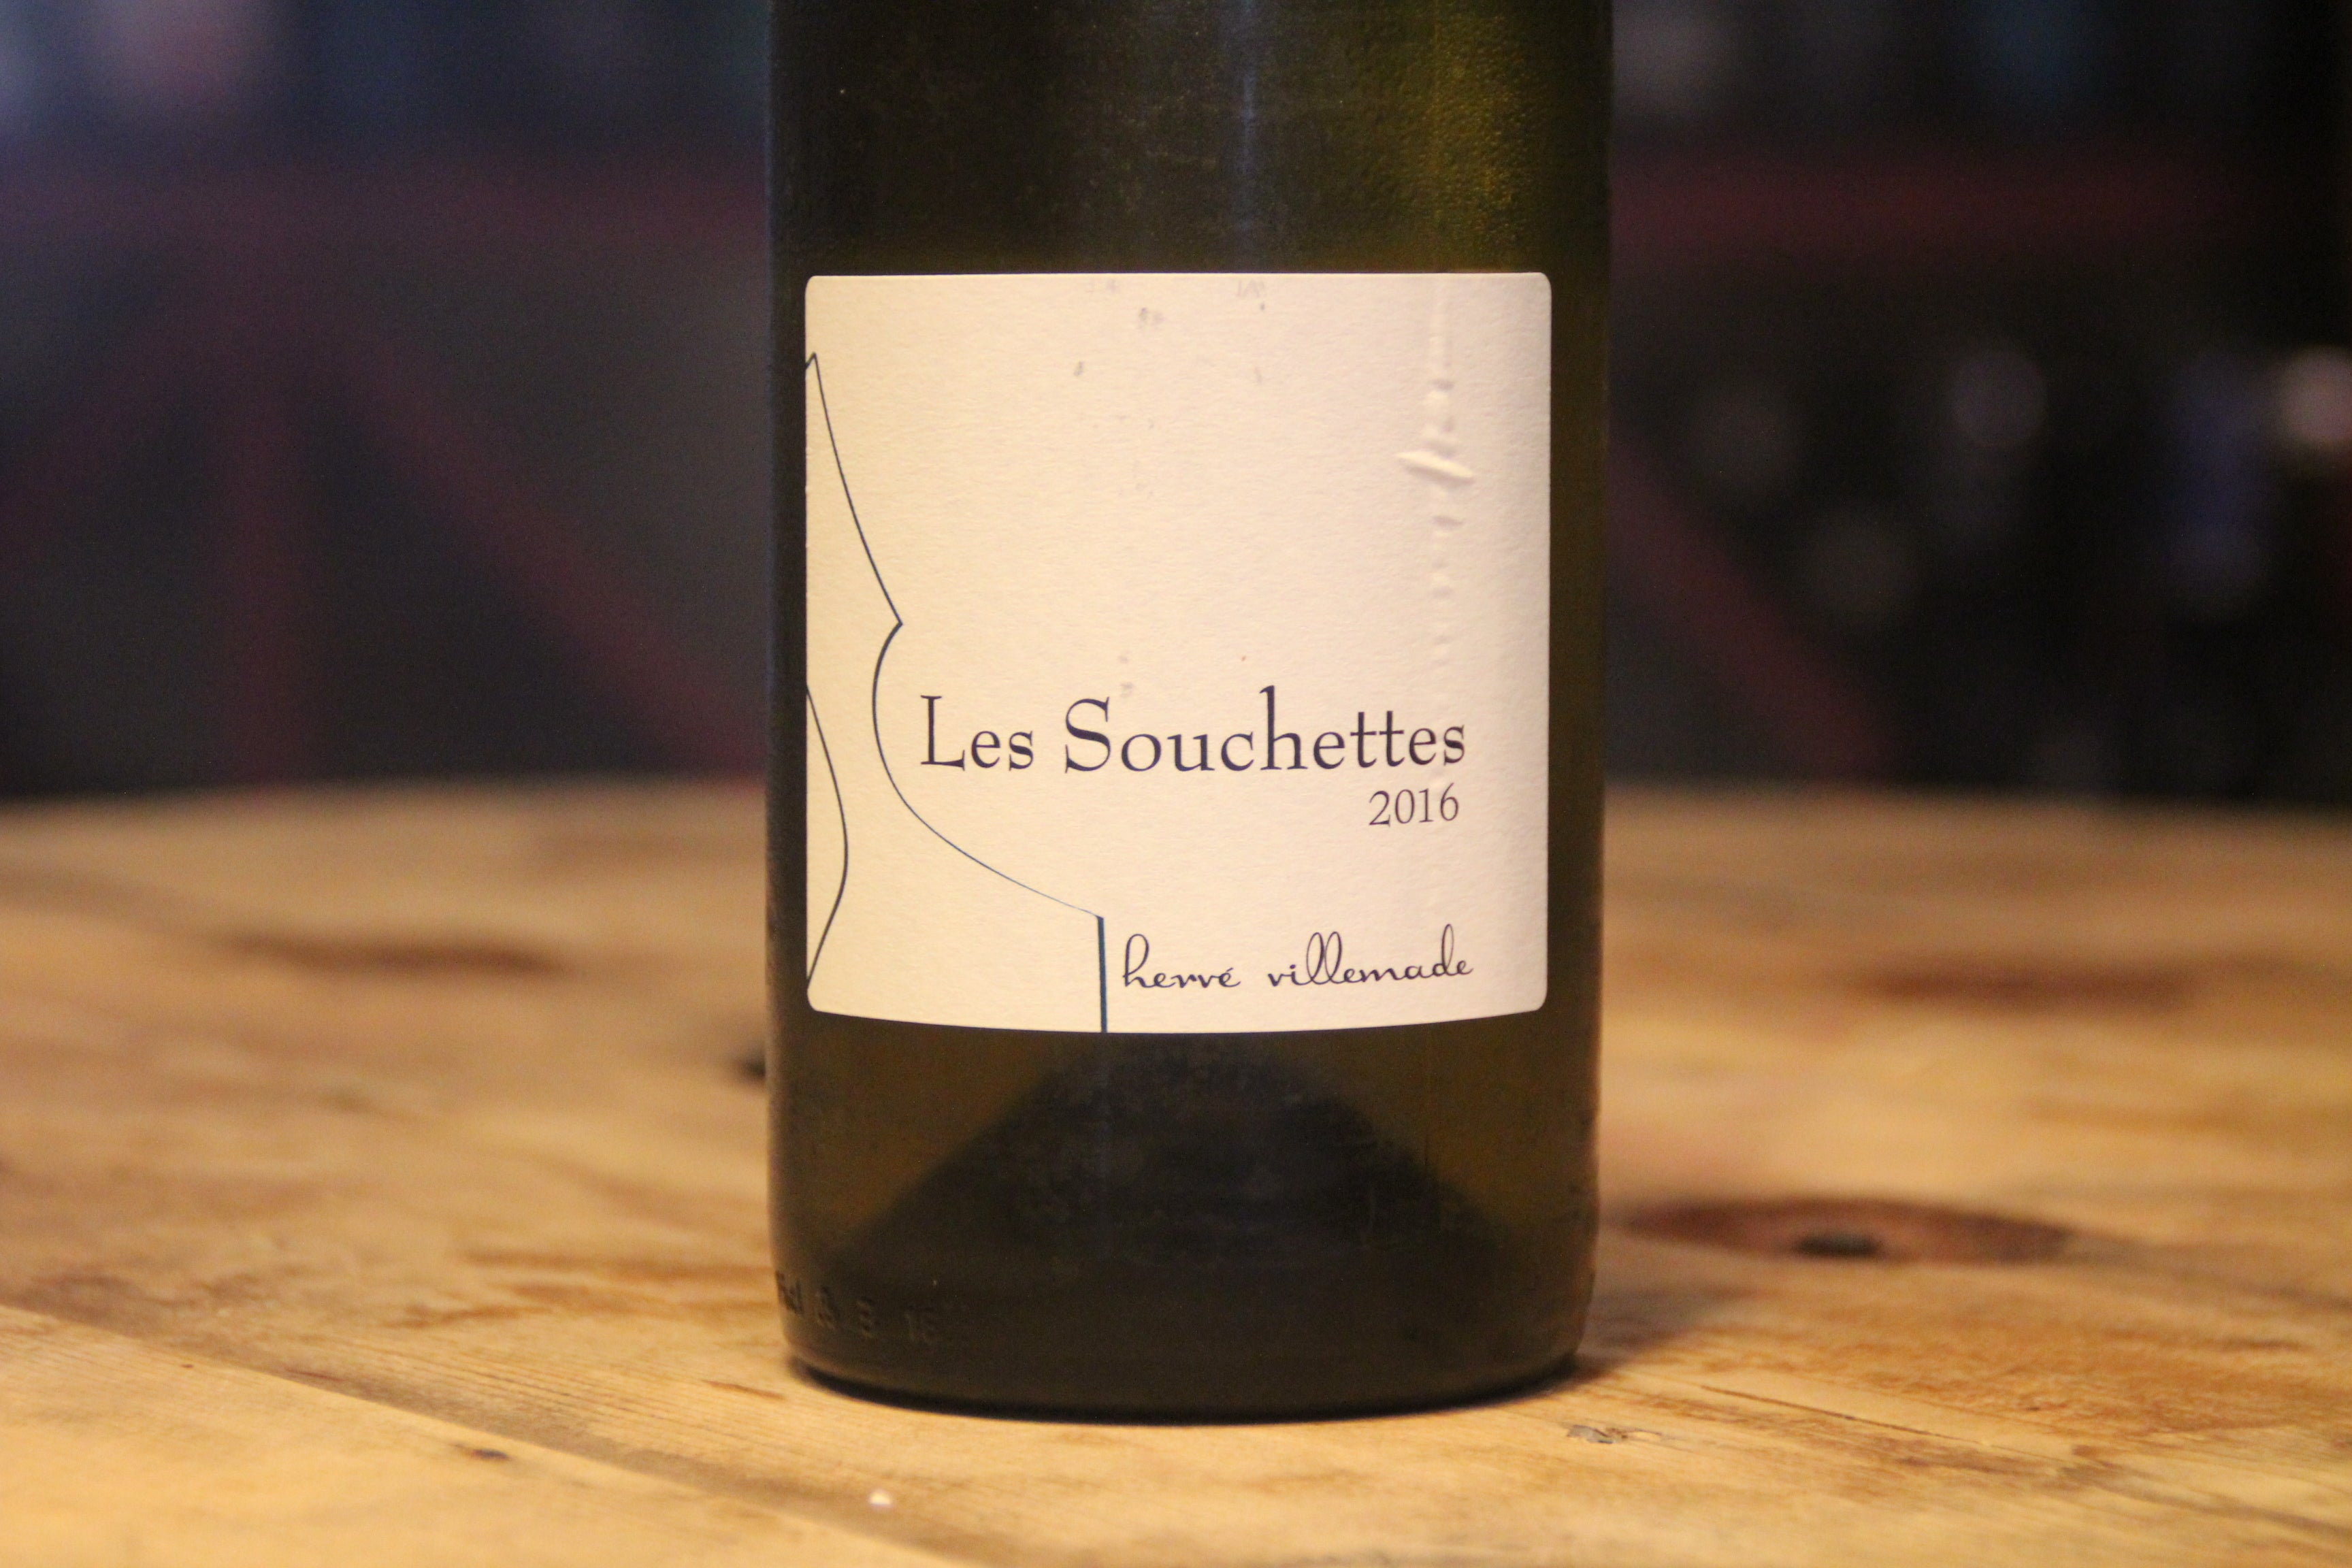 Cheverny Blanc Les Souchettes 2016 - Herve Villemade - SOLD OUT